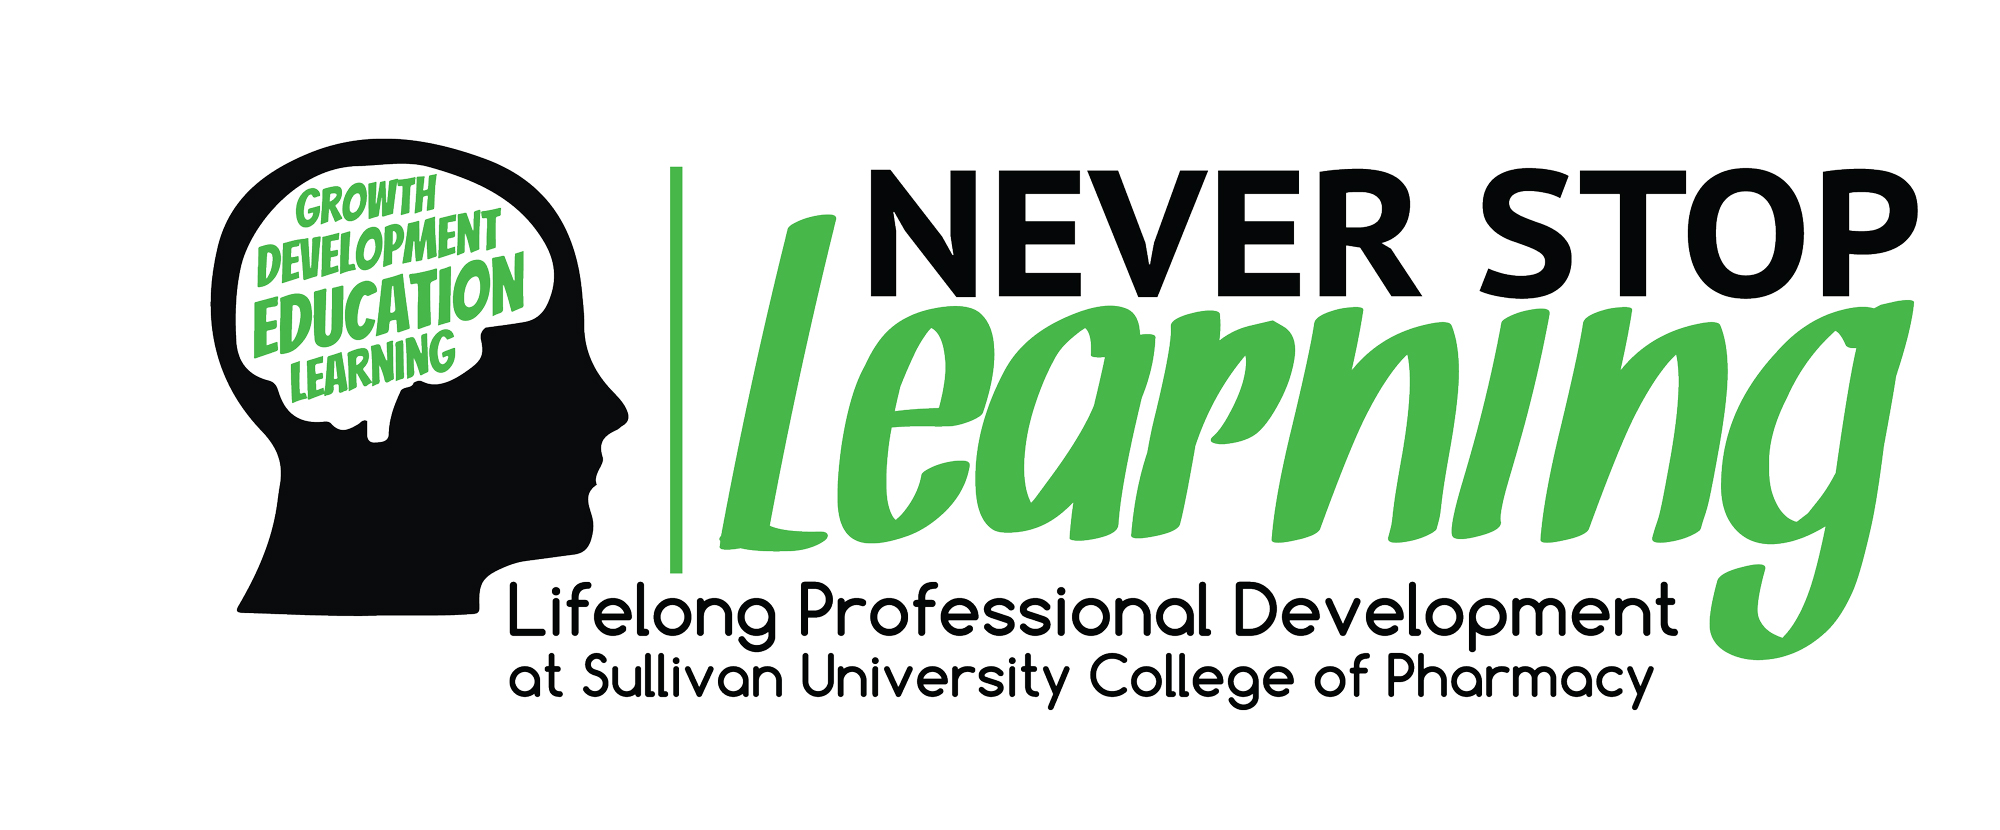 never stop learning lifelong professional development at Sullivan University college of pharmacy banner graphic